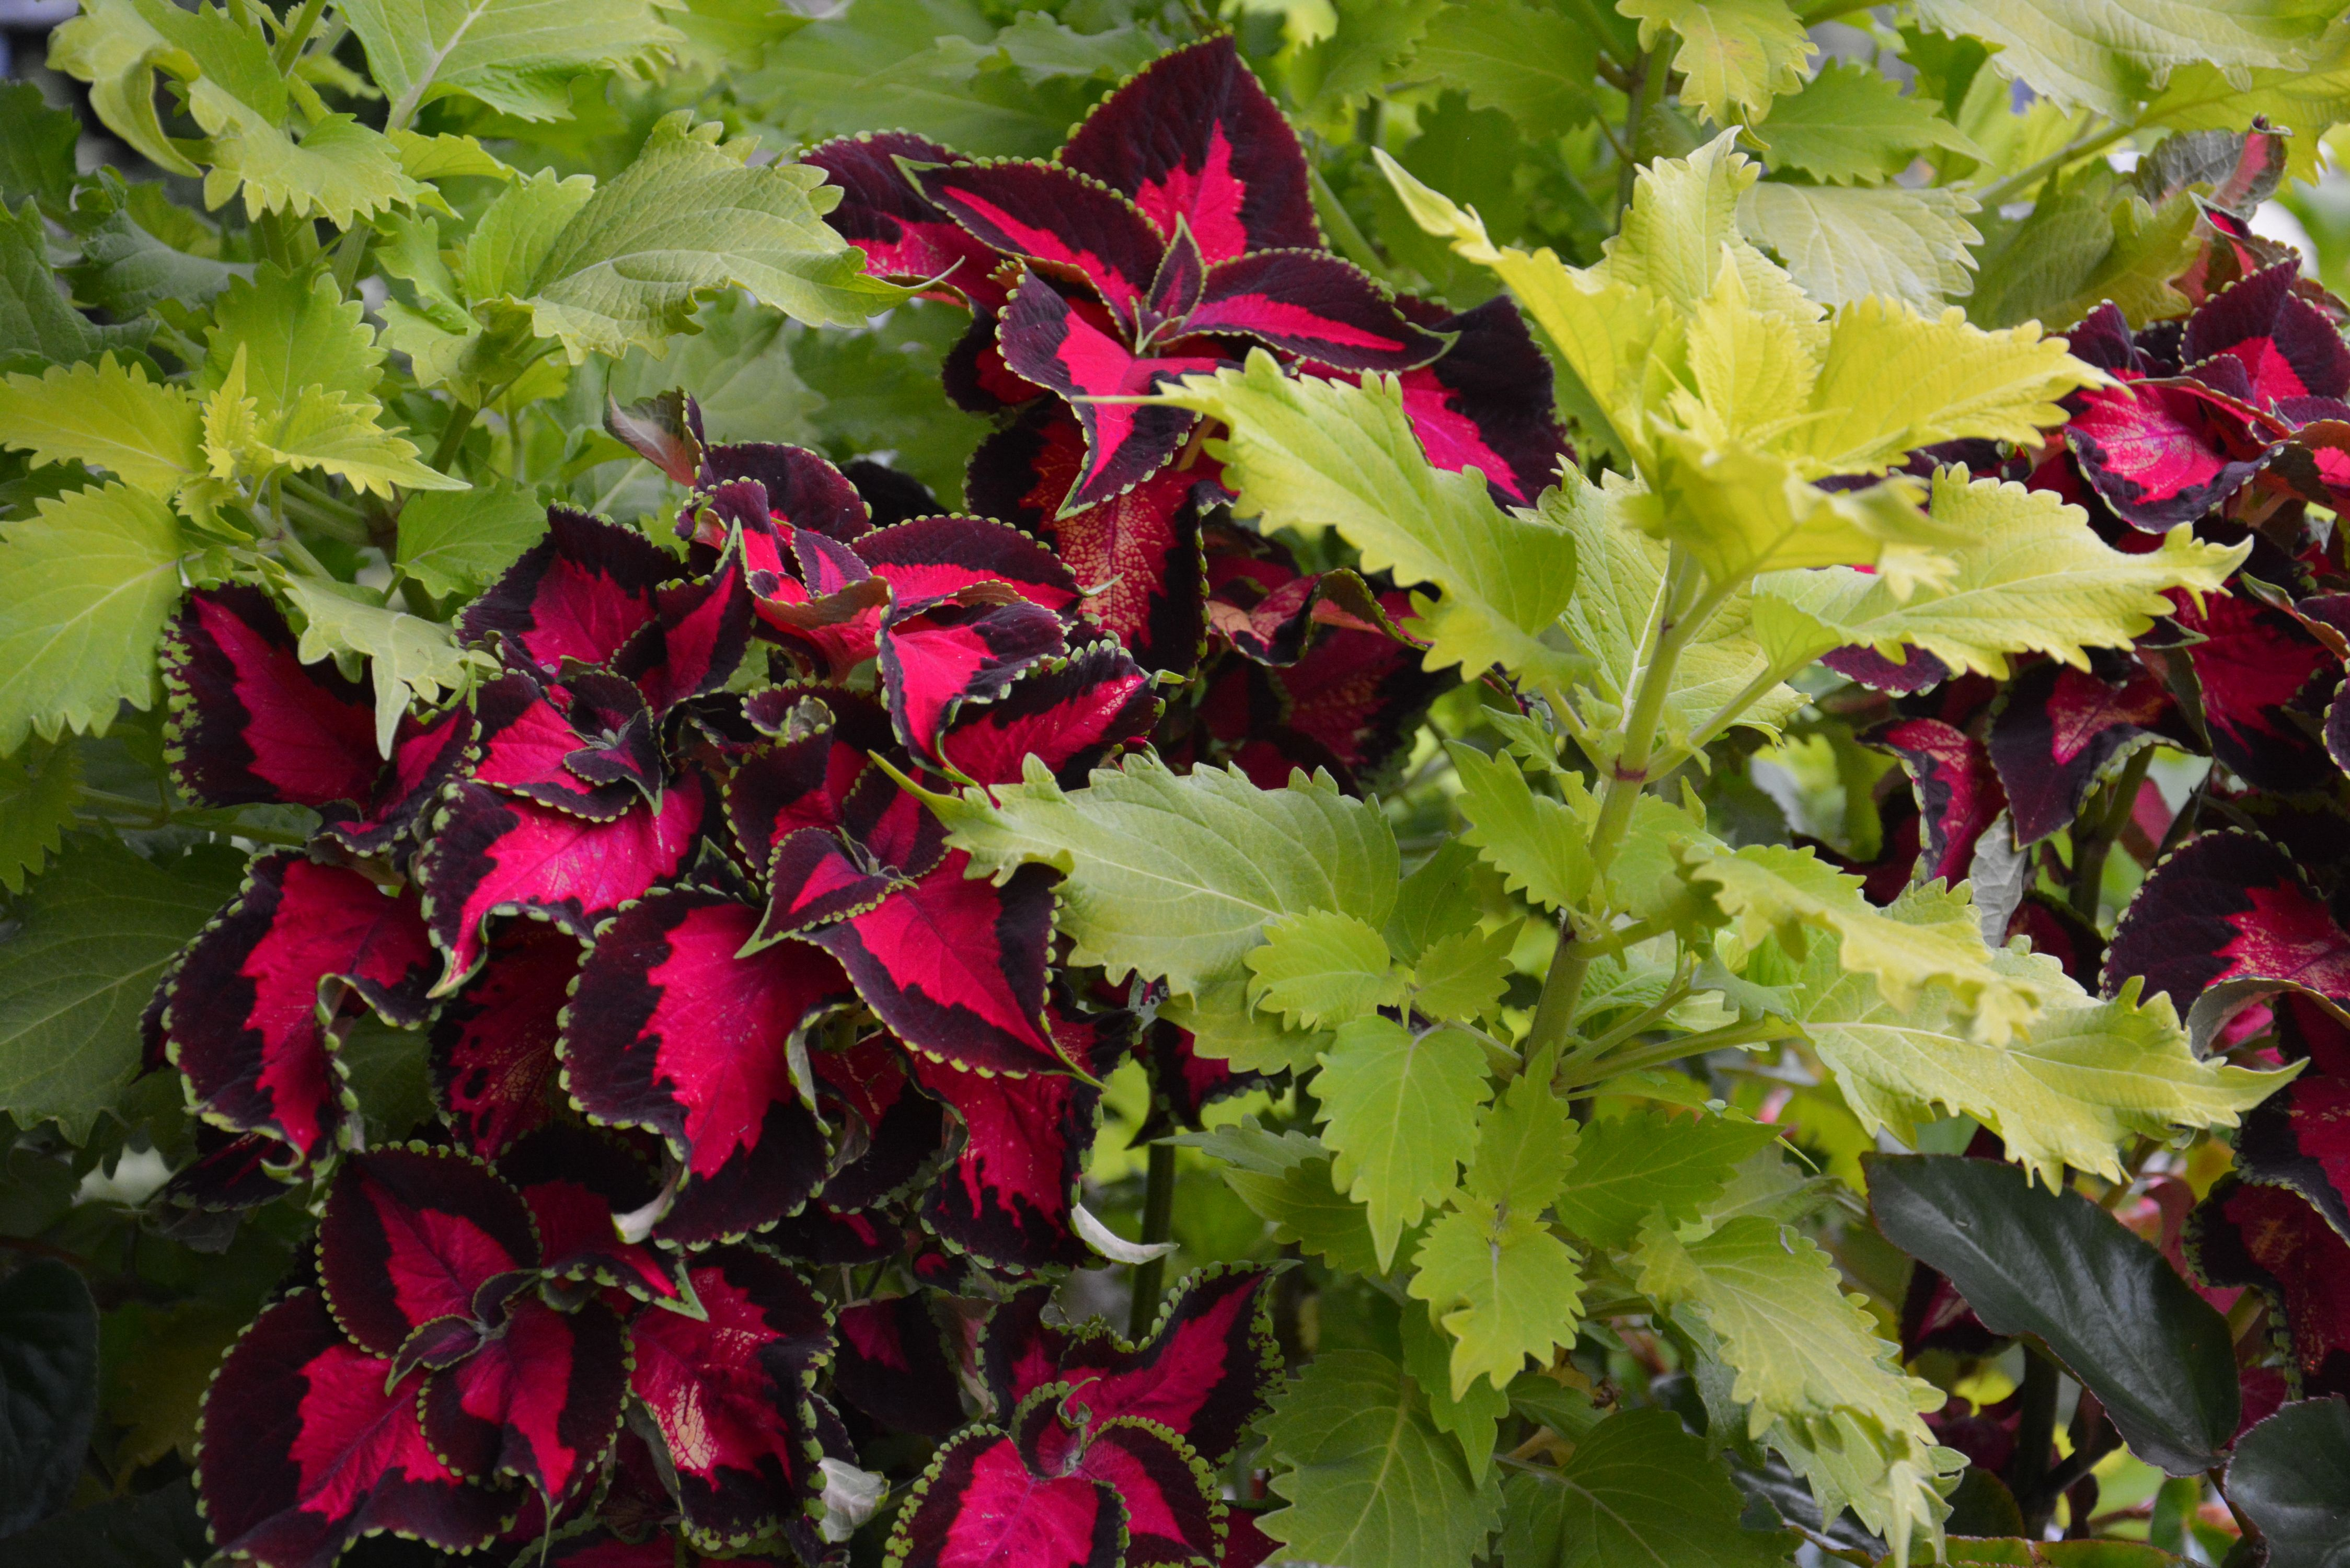 17 Best images about Non-flowering outdoor plants on Pinterest ...